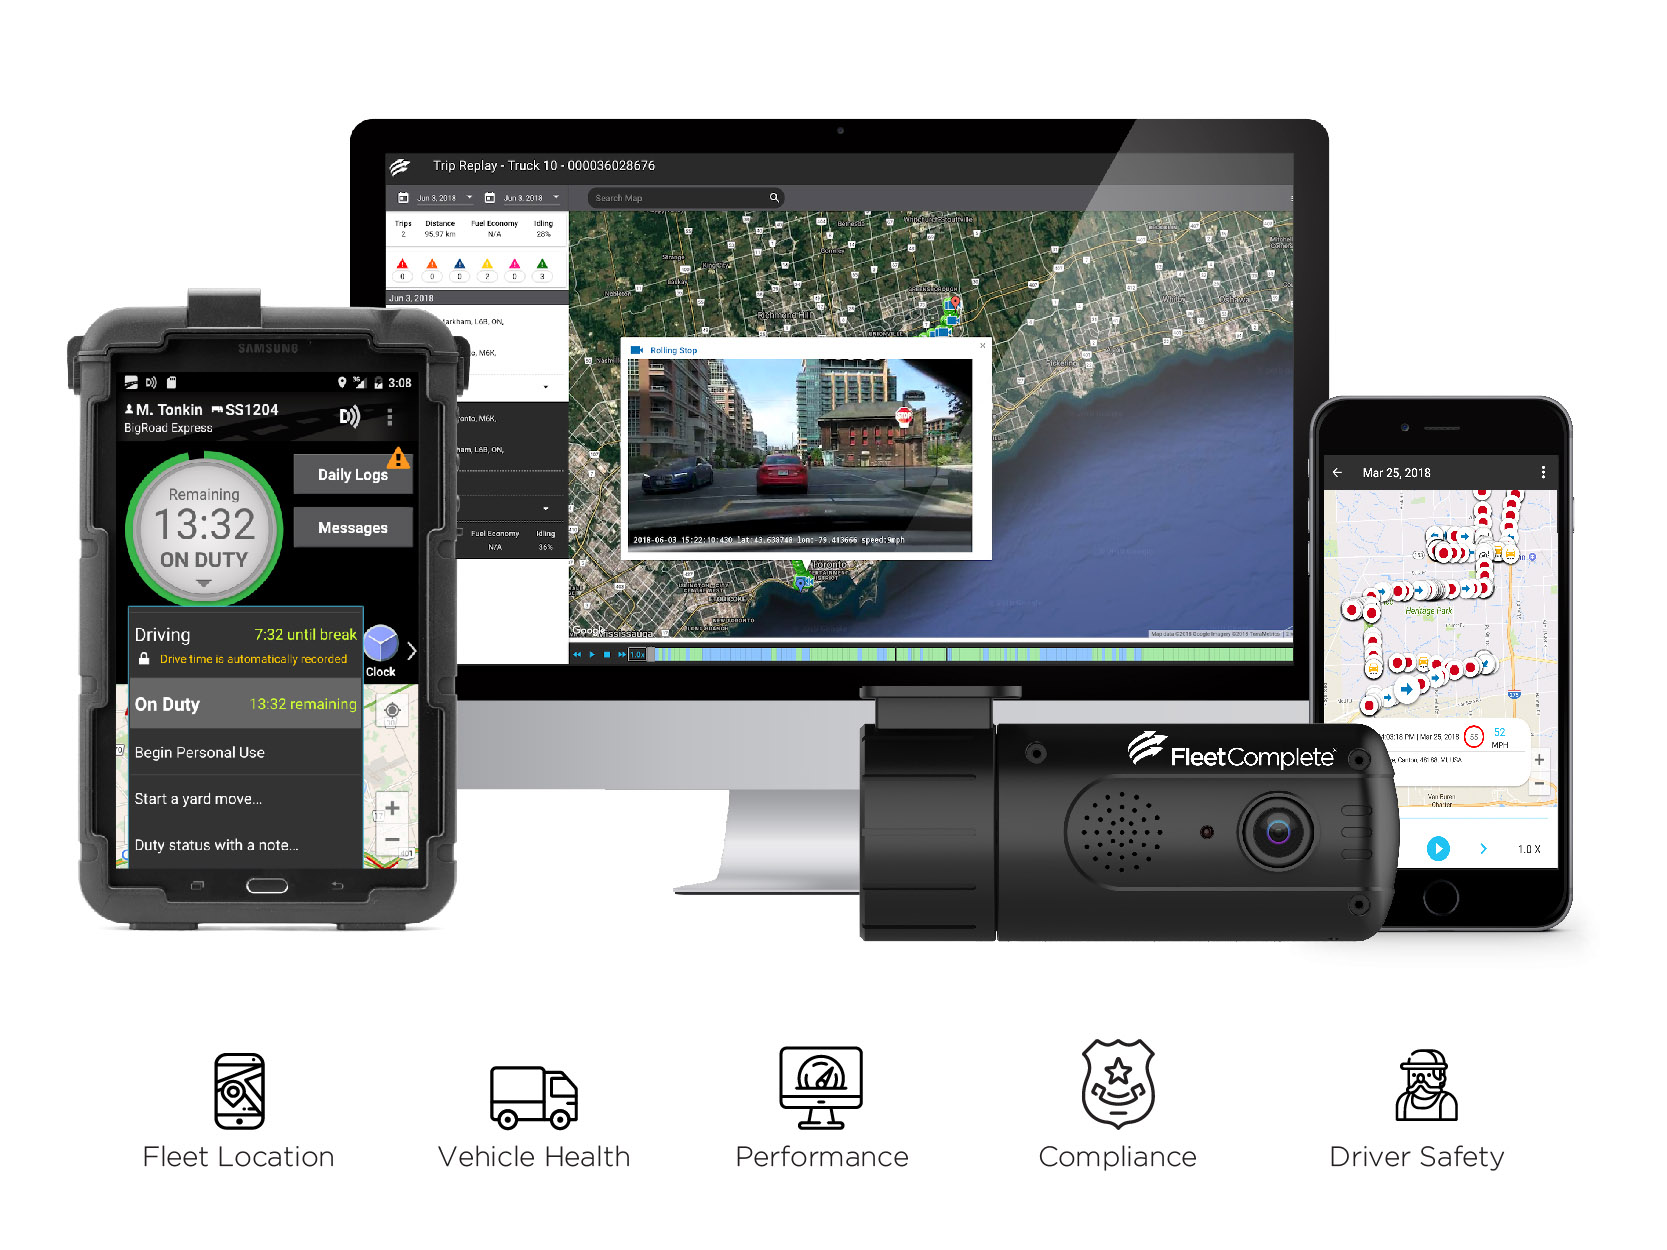 The Ultimate Bundle includes GPS, Dashcam, ELD, web and mobile app